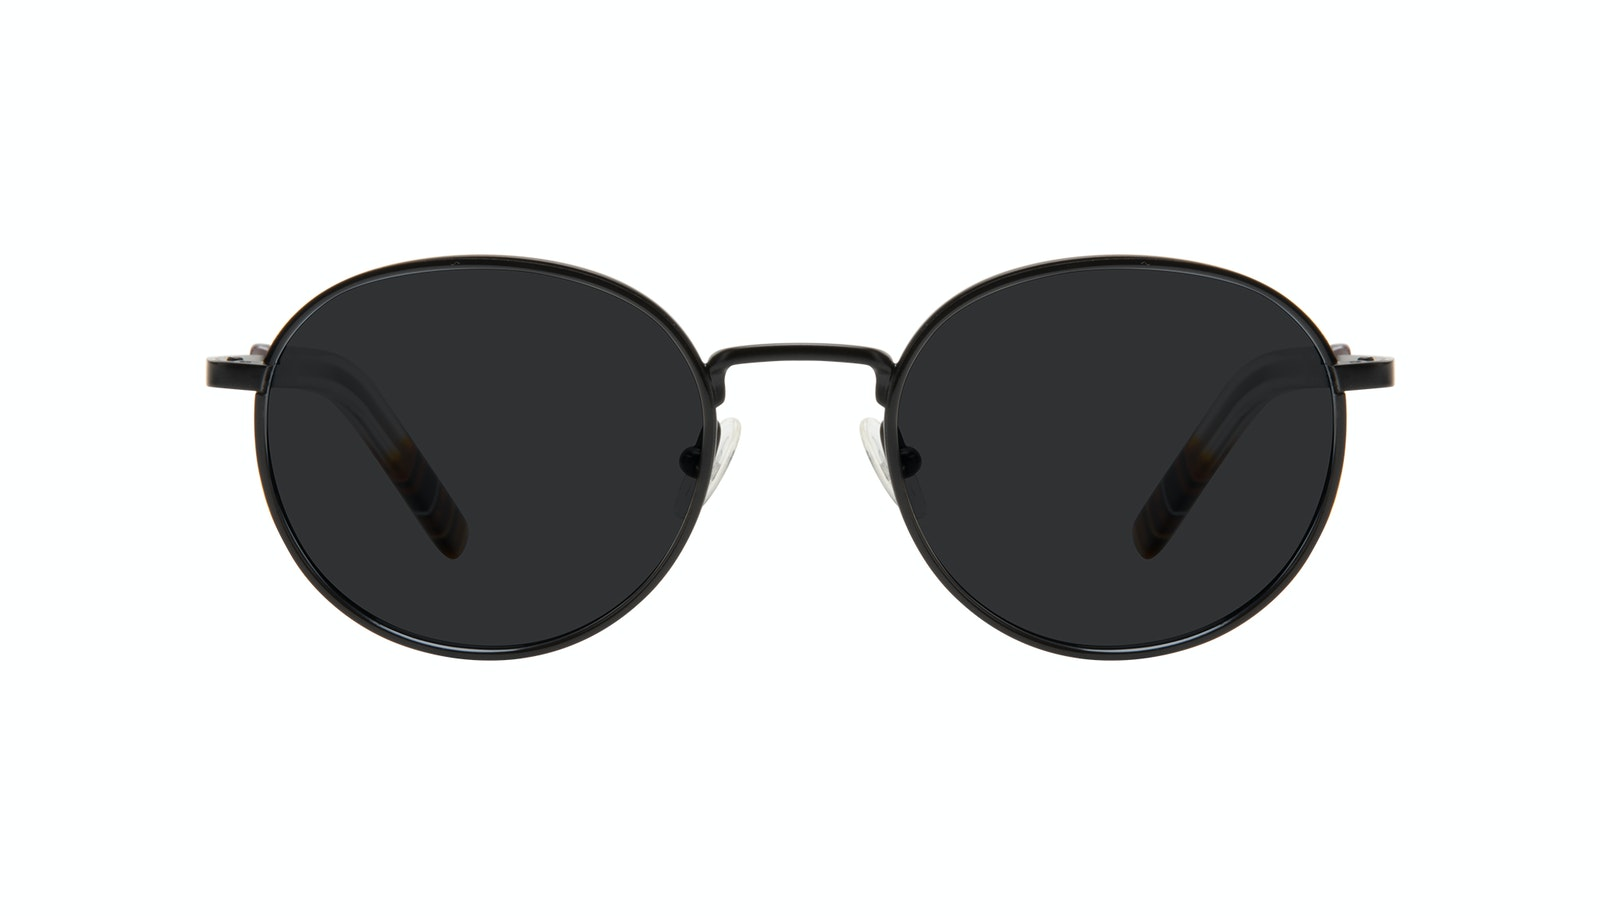 Affordable Fashion Glasses Round Sunglasses Men Reach Matte Black